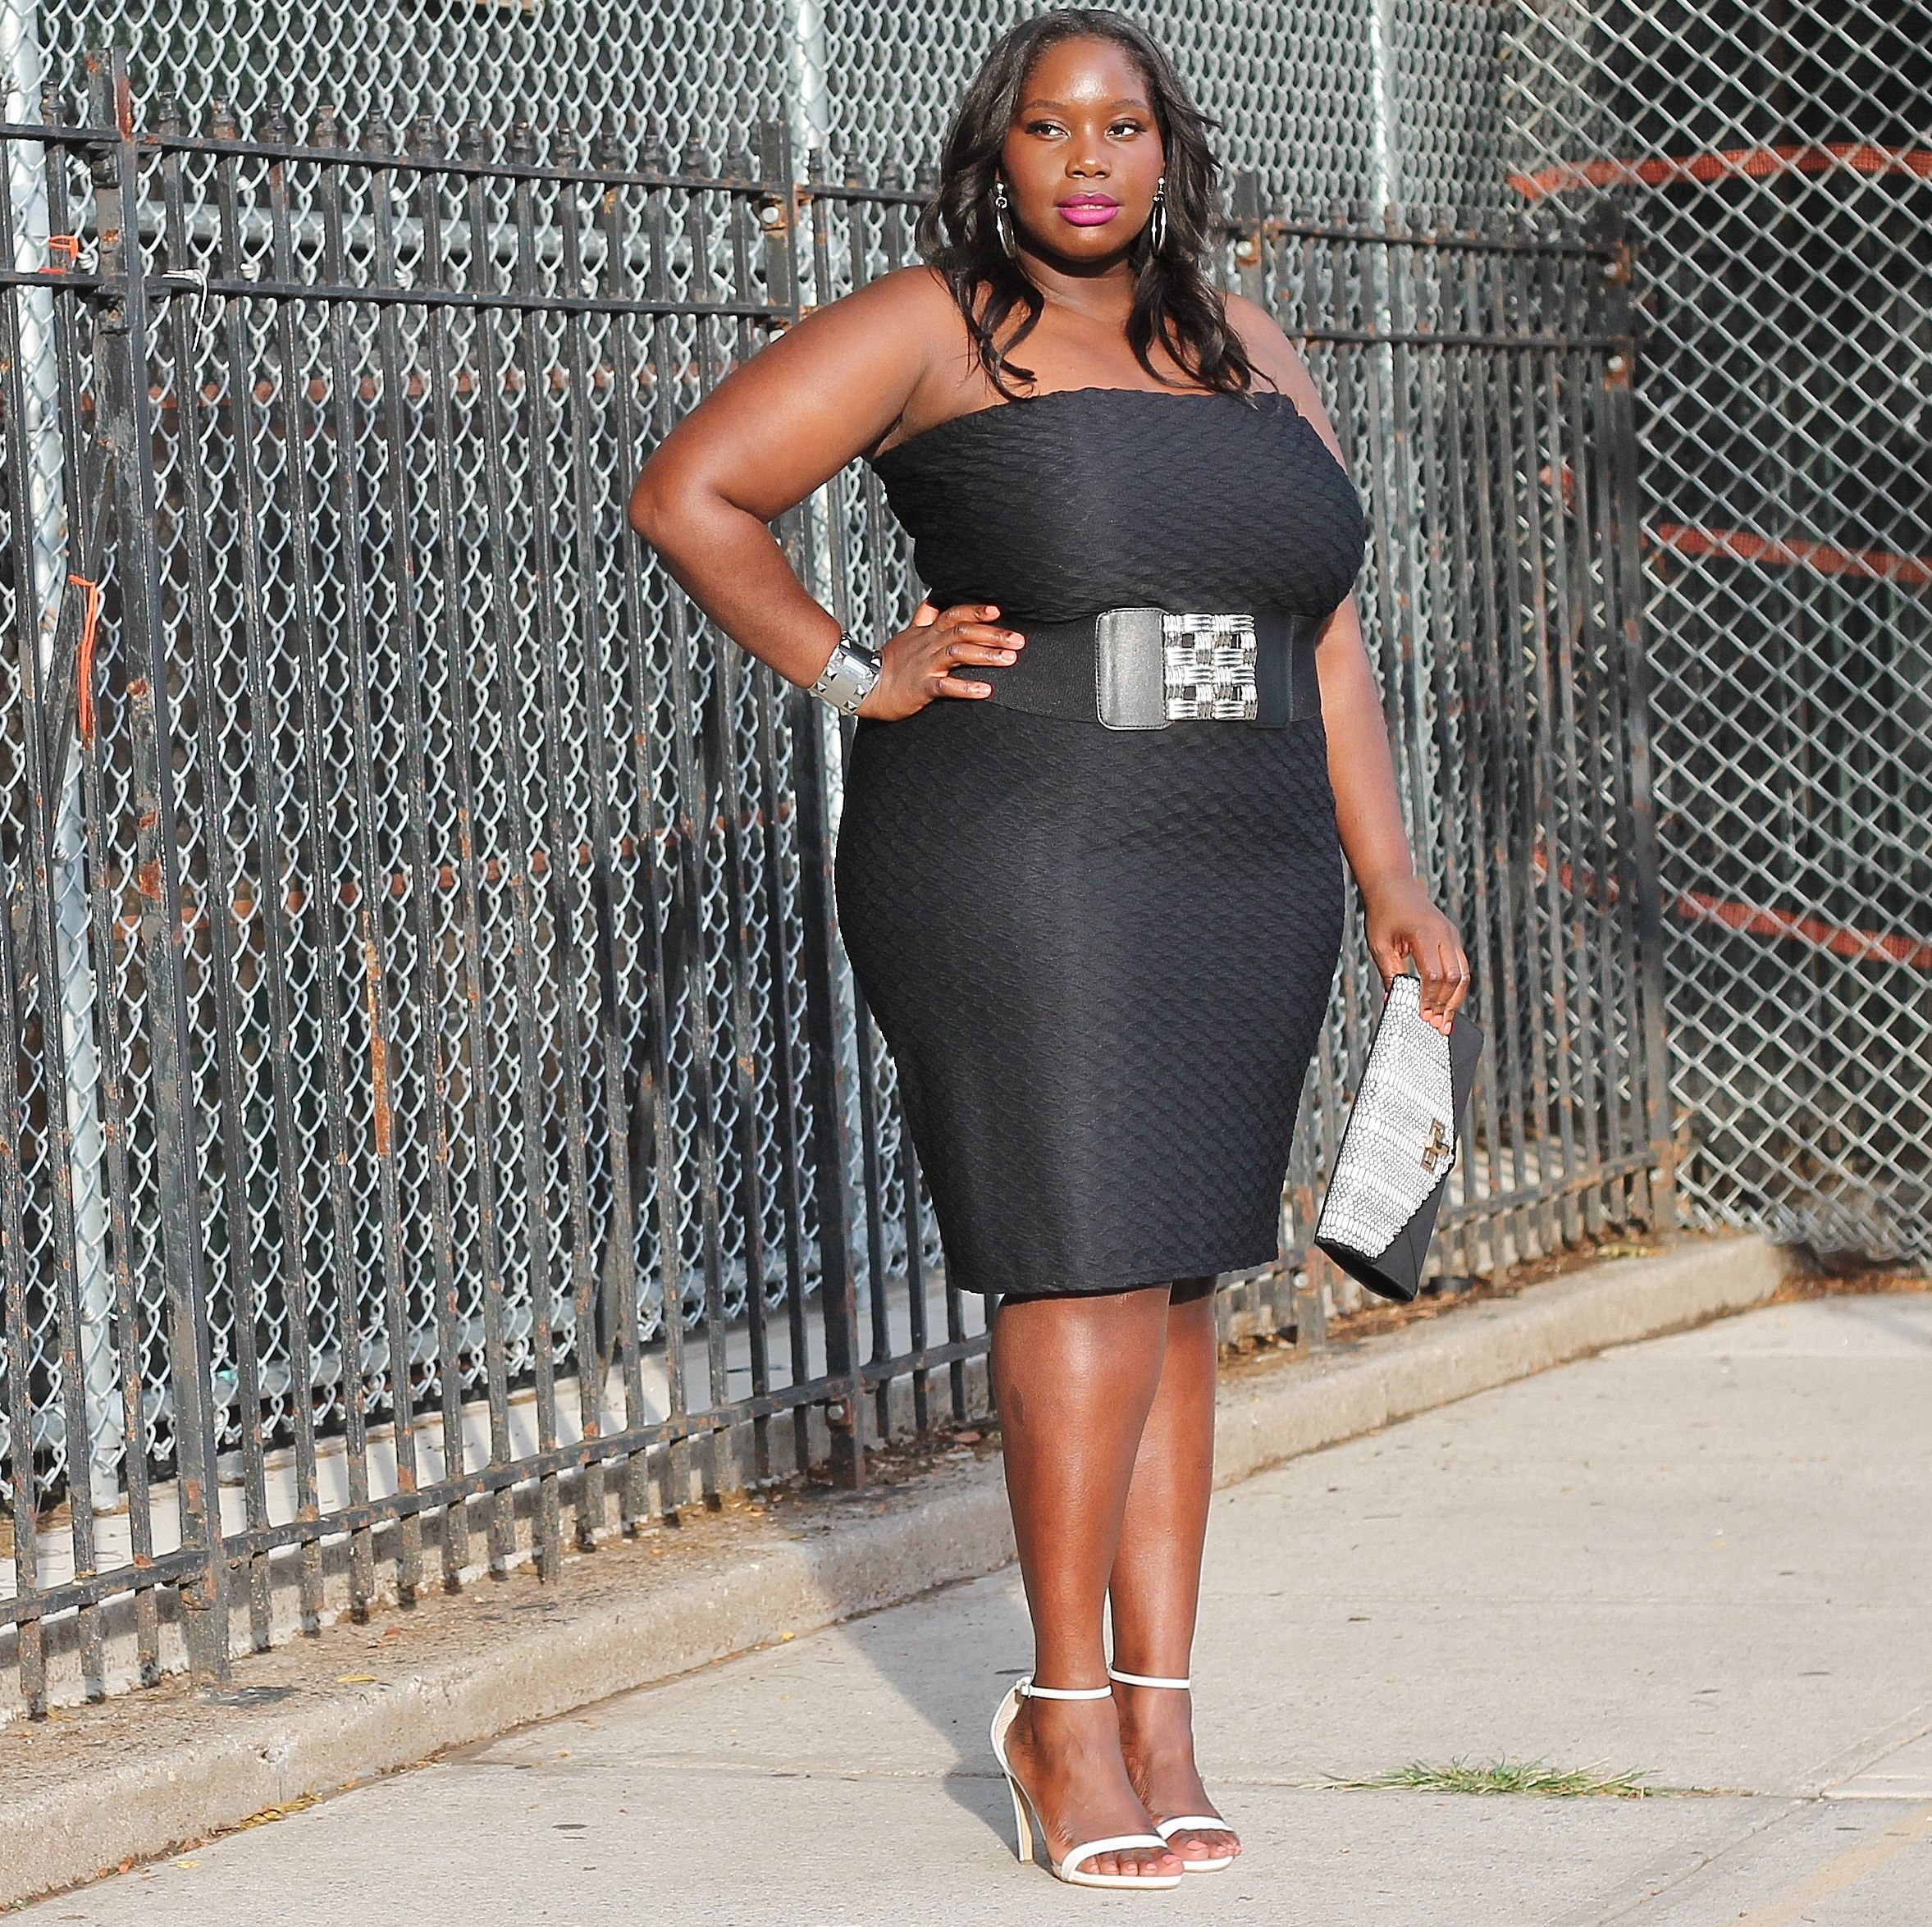 strapless bras for me   fashion for the big an beautiful woman